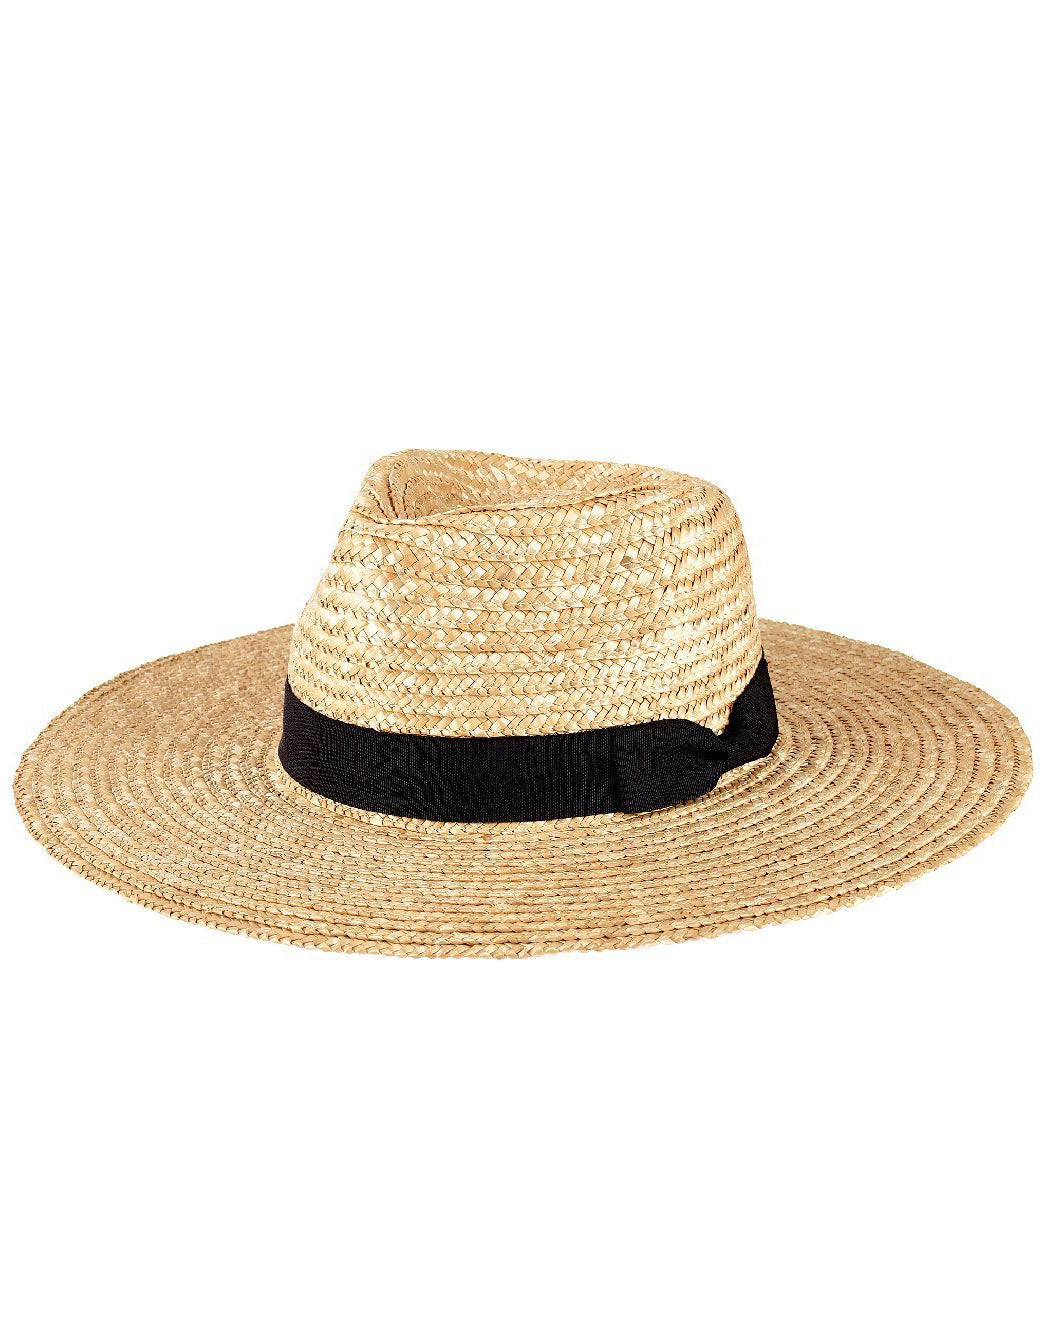 San Diego Hat Company's Pinched Crwon Wheat Straw Sunbrim Hat in Natural - product view